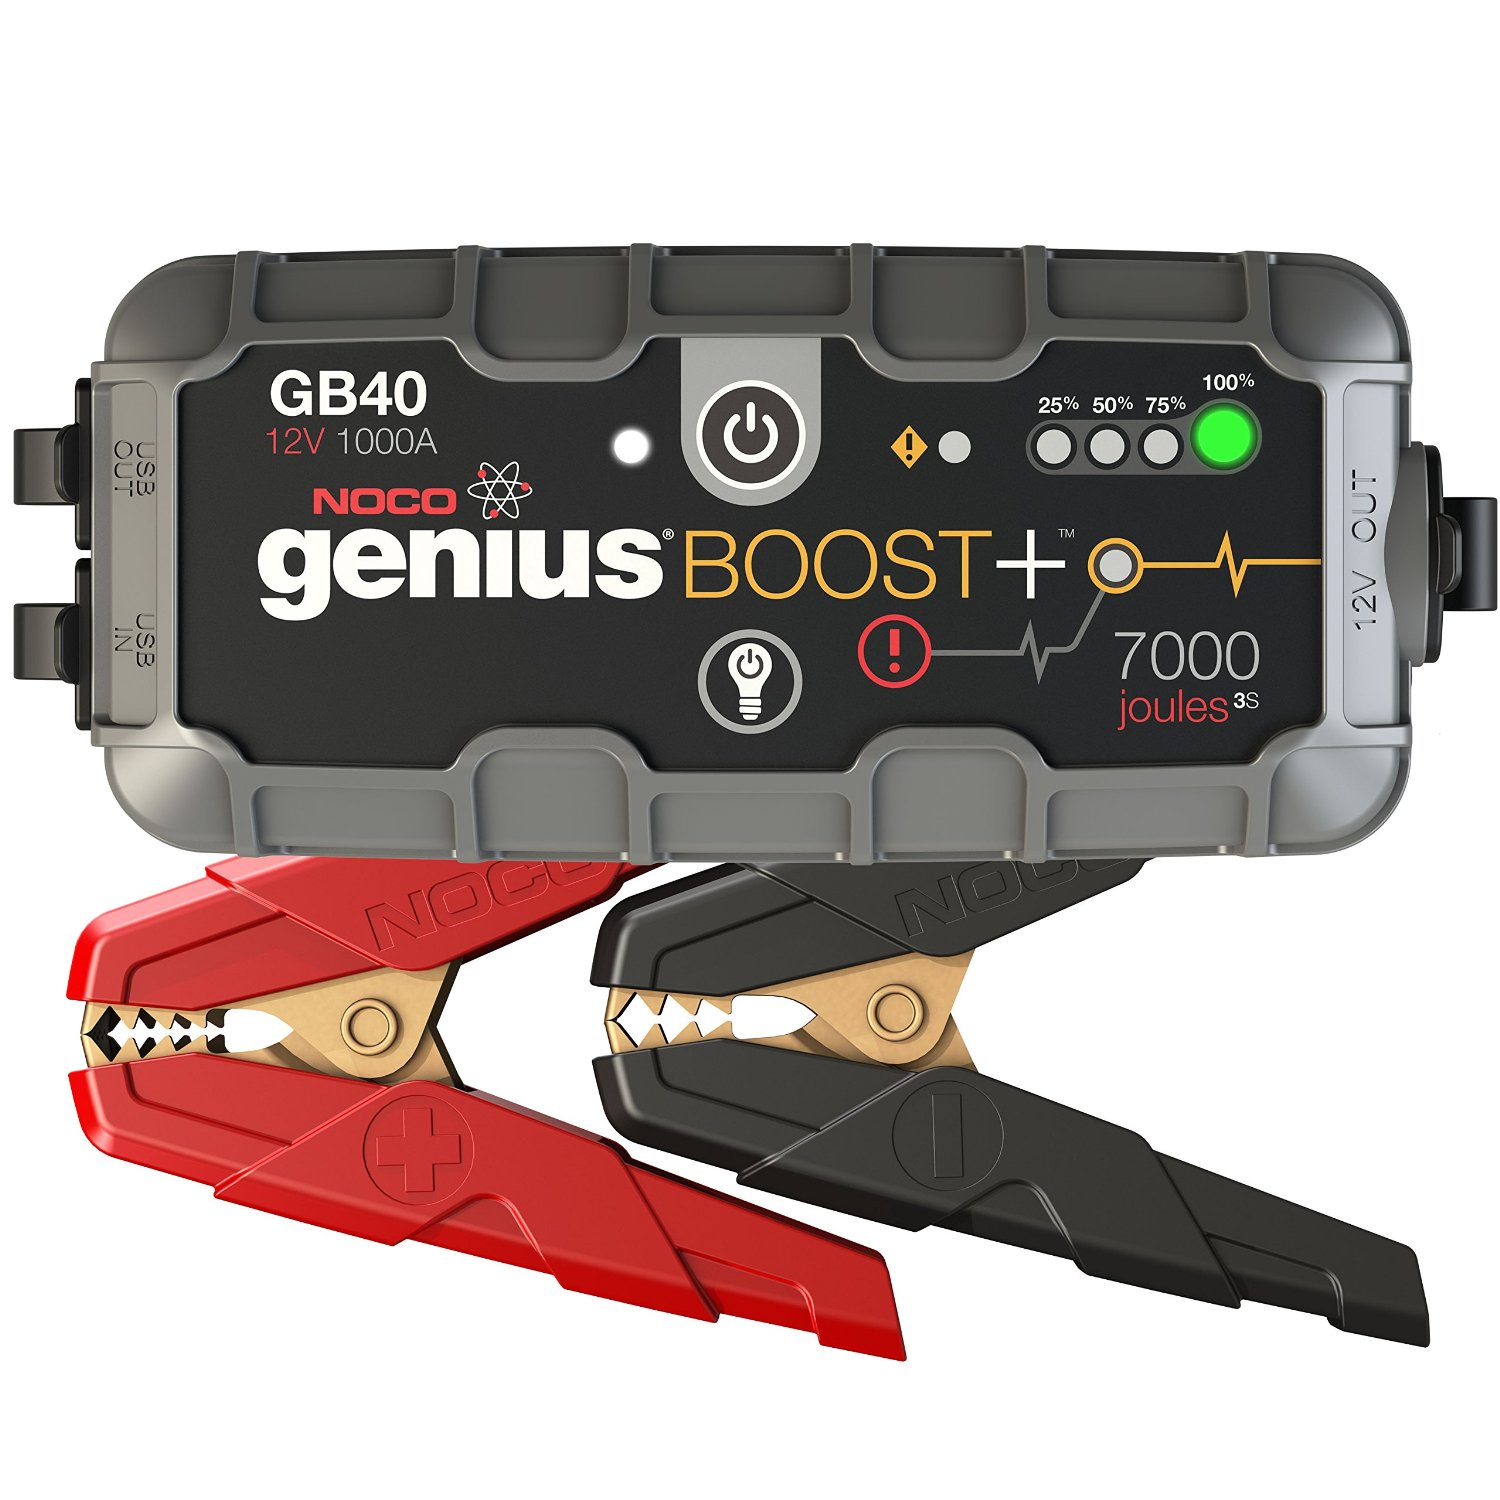 NOCO PLUS GB40 GENIUS BOOST 1000A